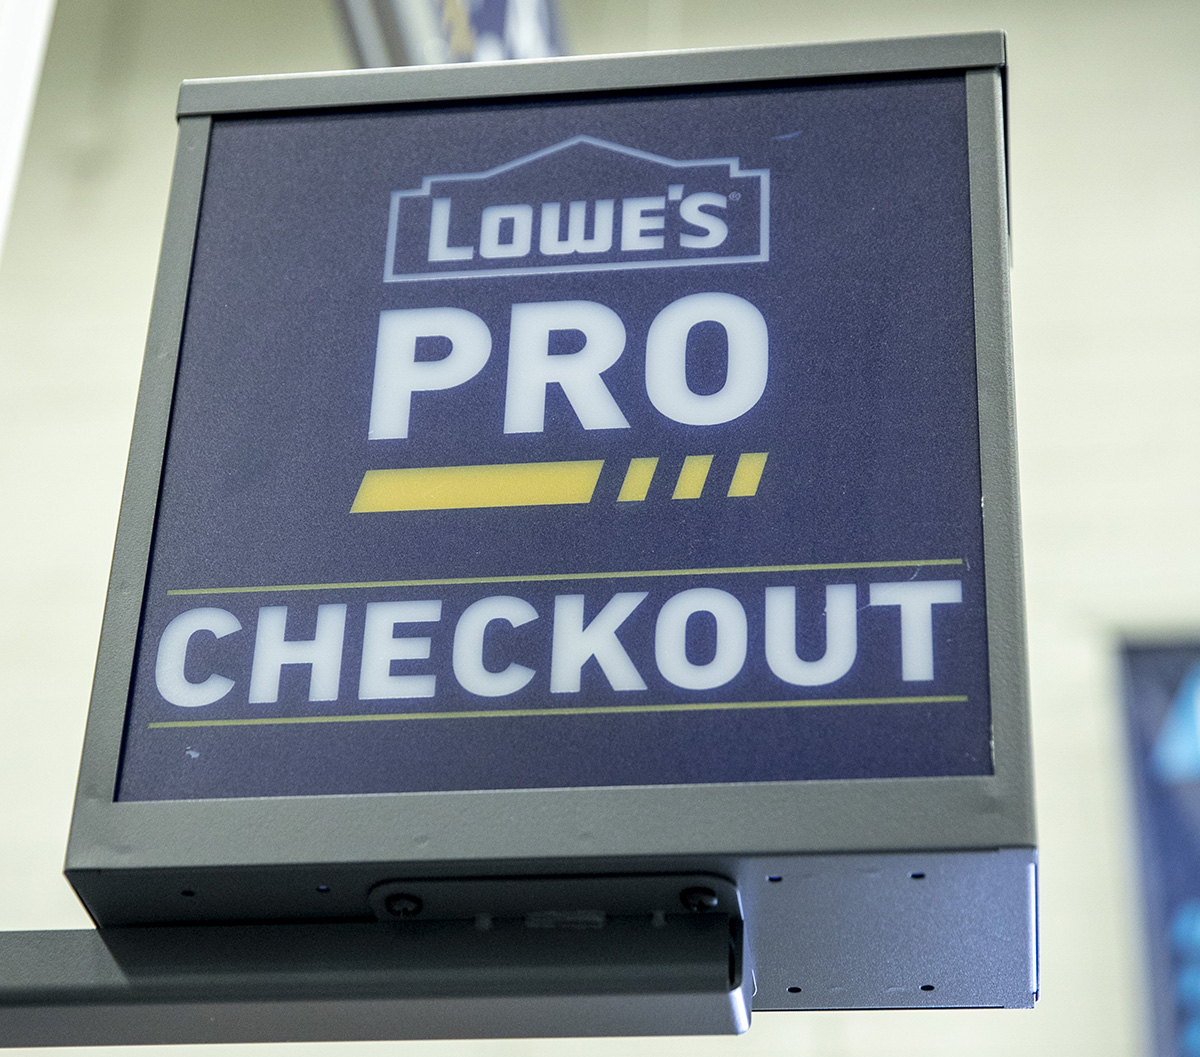 A dedicated checkout area of Lowe's Pros members